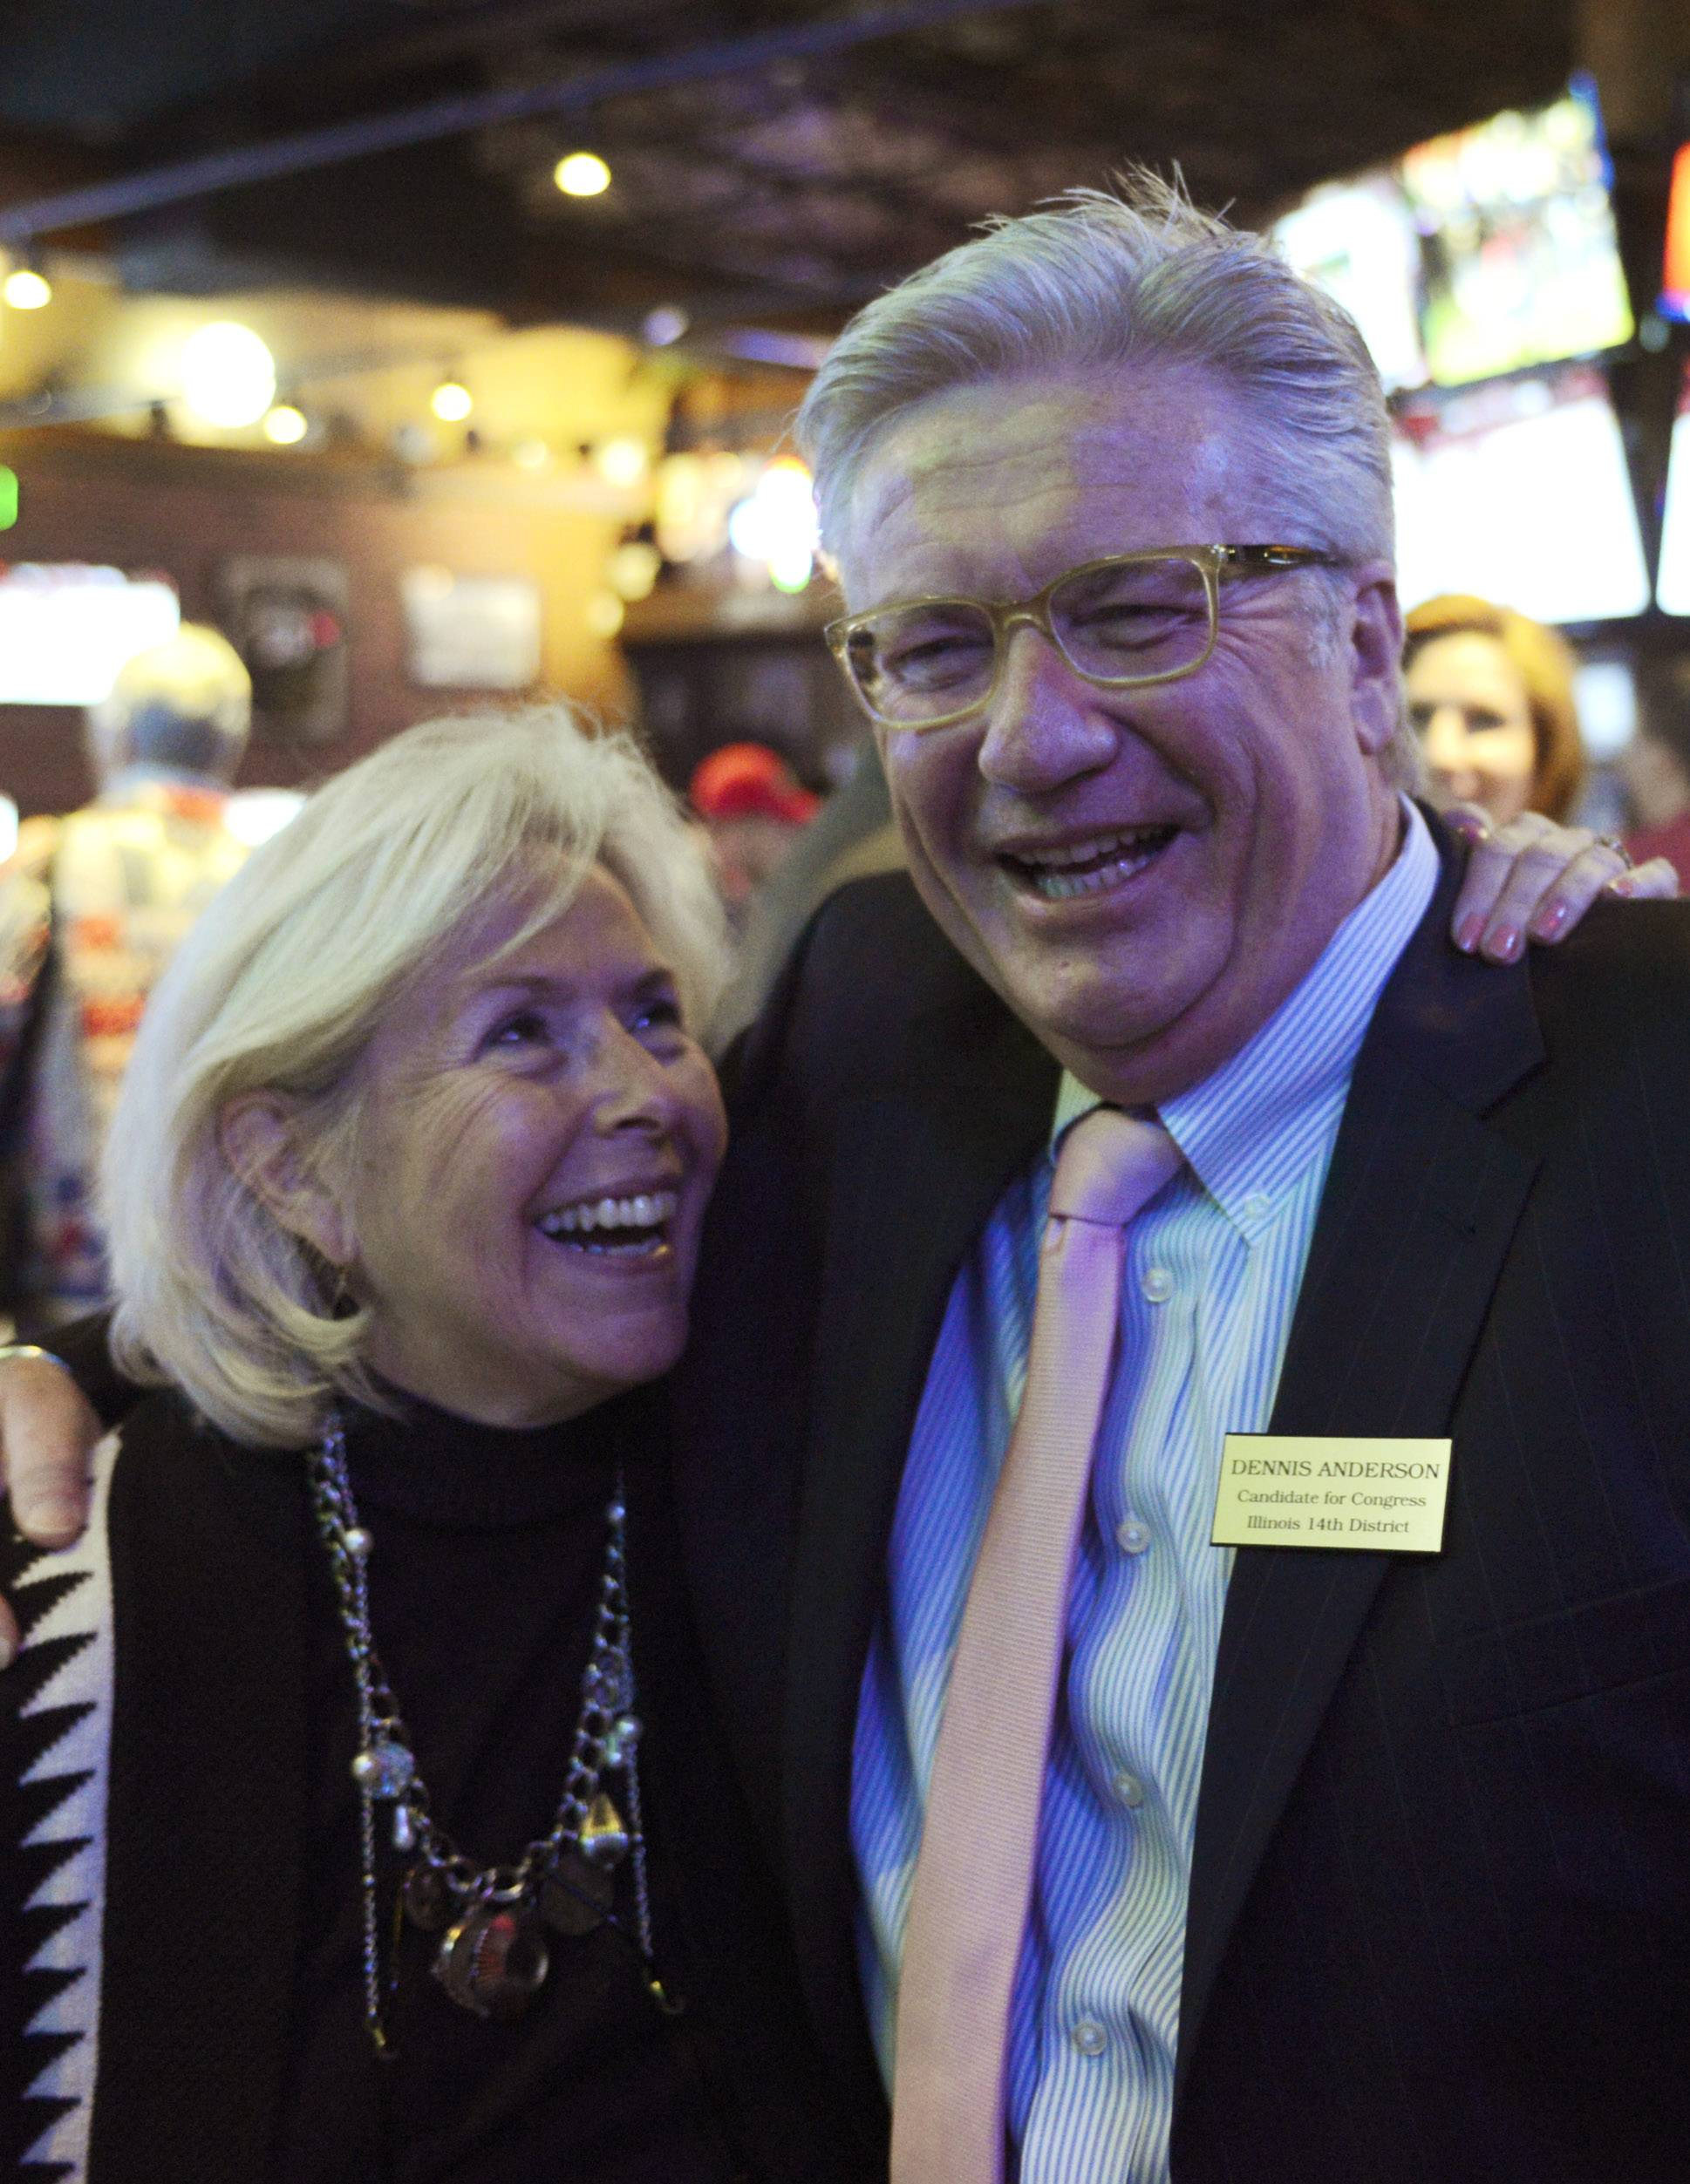 Democrat Dennis Anderson celebrates with his wife, Susan Glad-Anderson, following his primary victory Tuesday night.